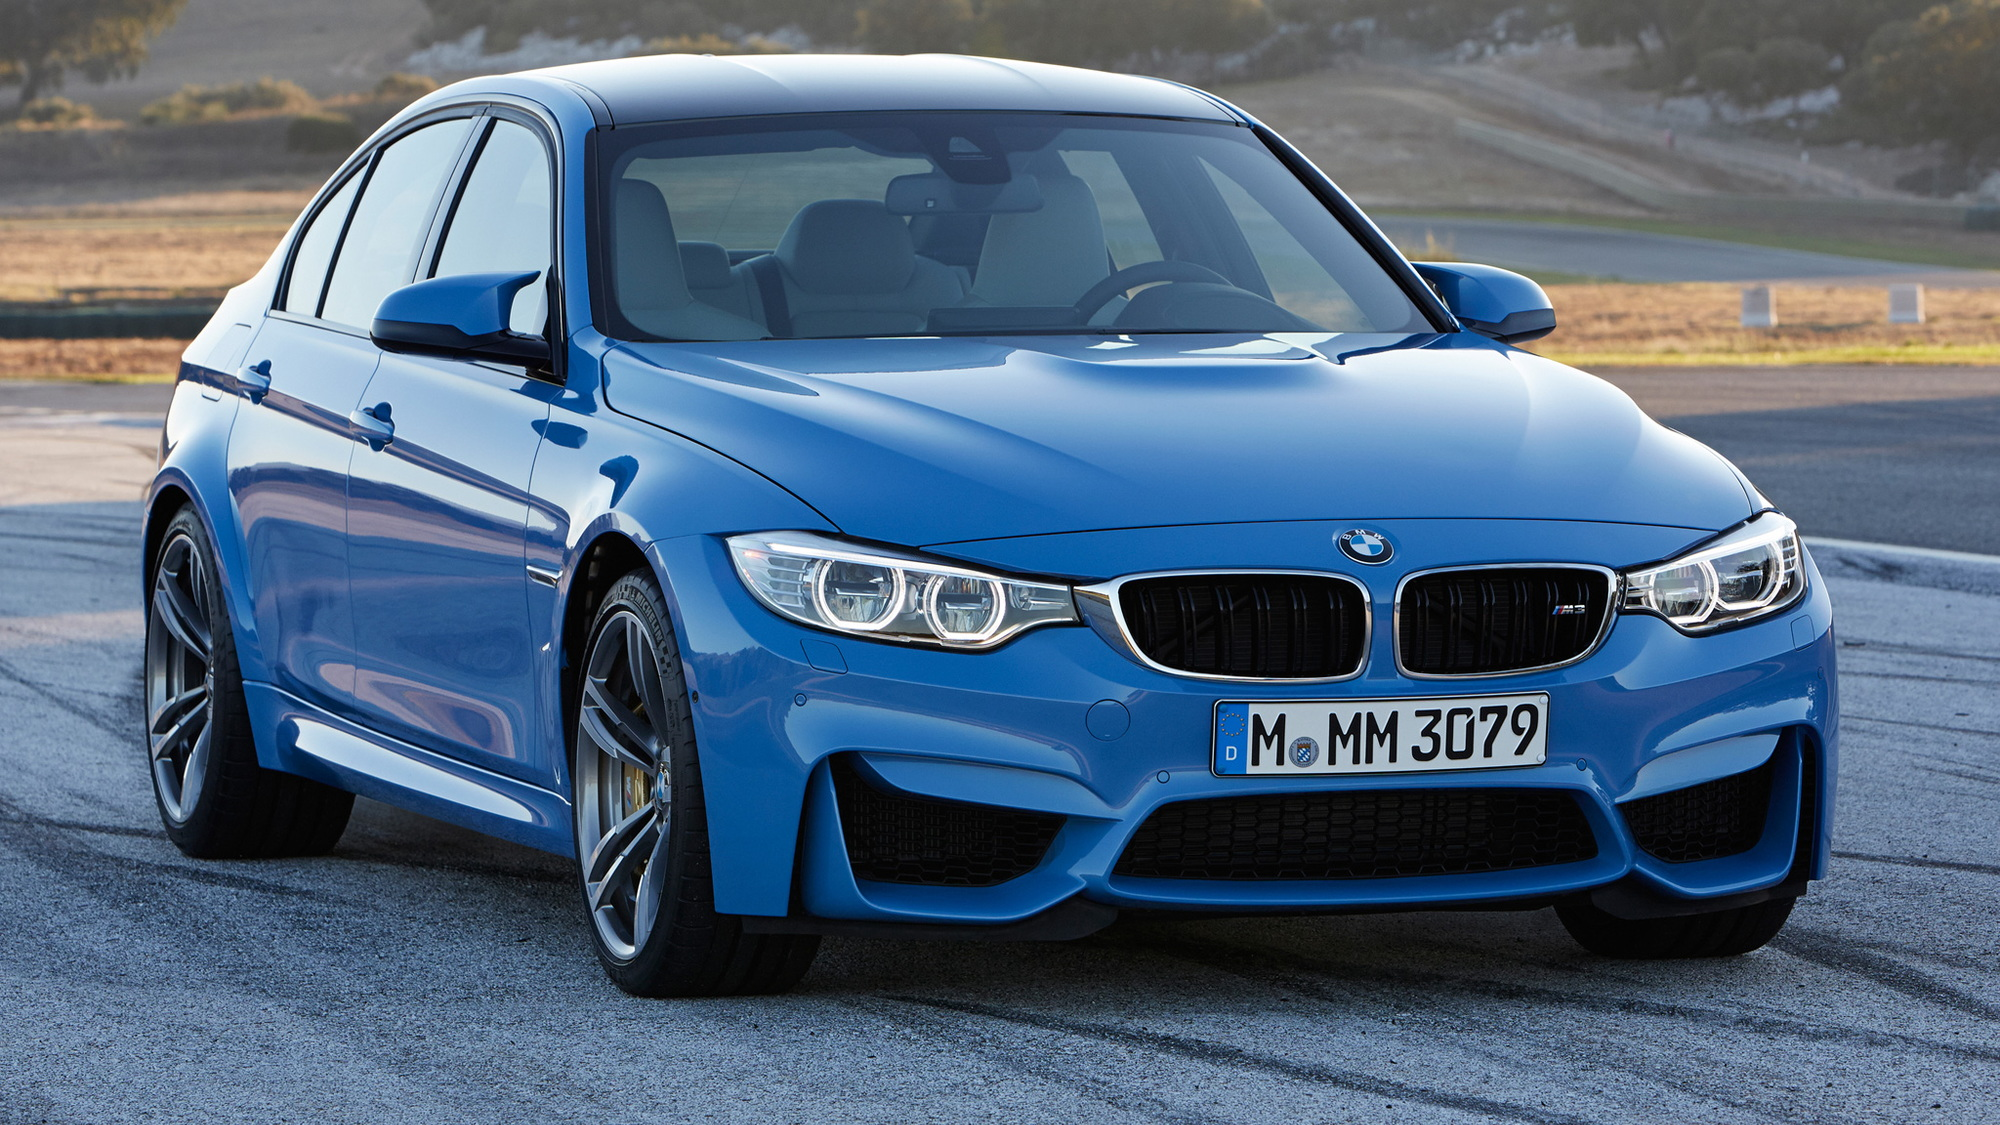 2015 BMW M3 leaked images